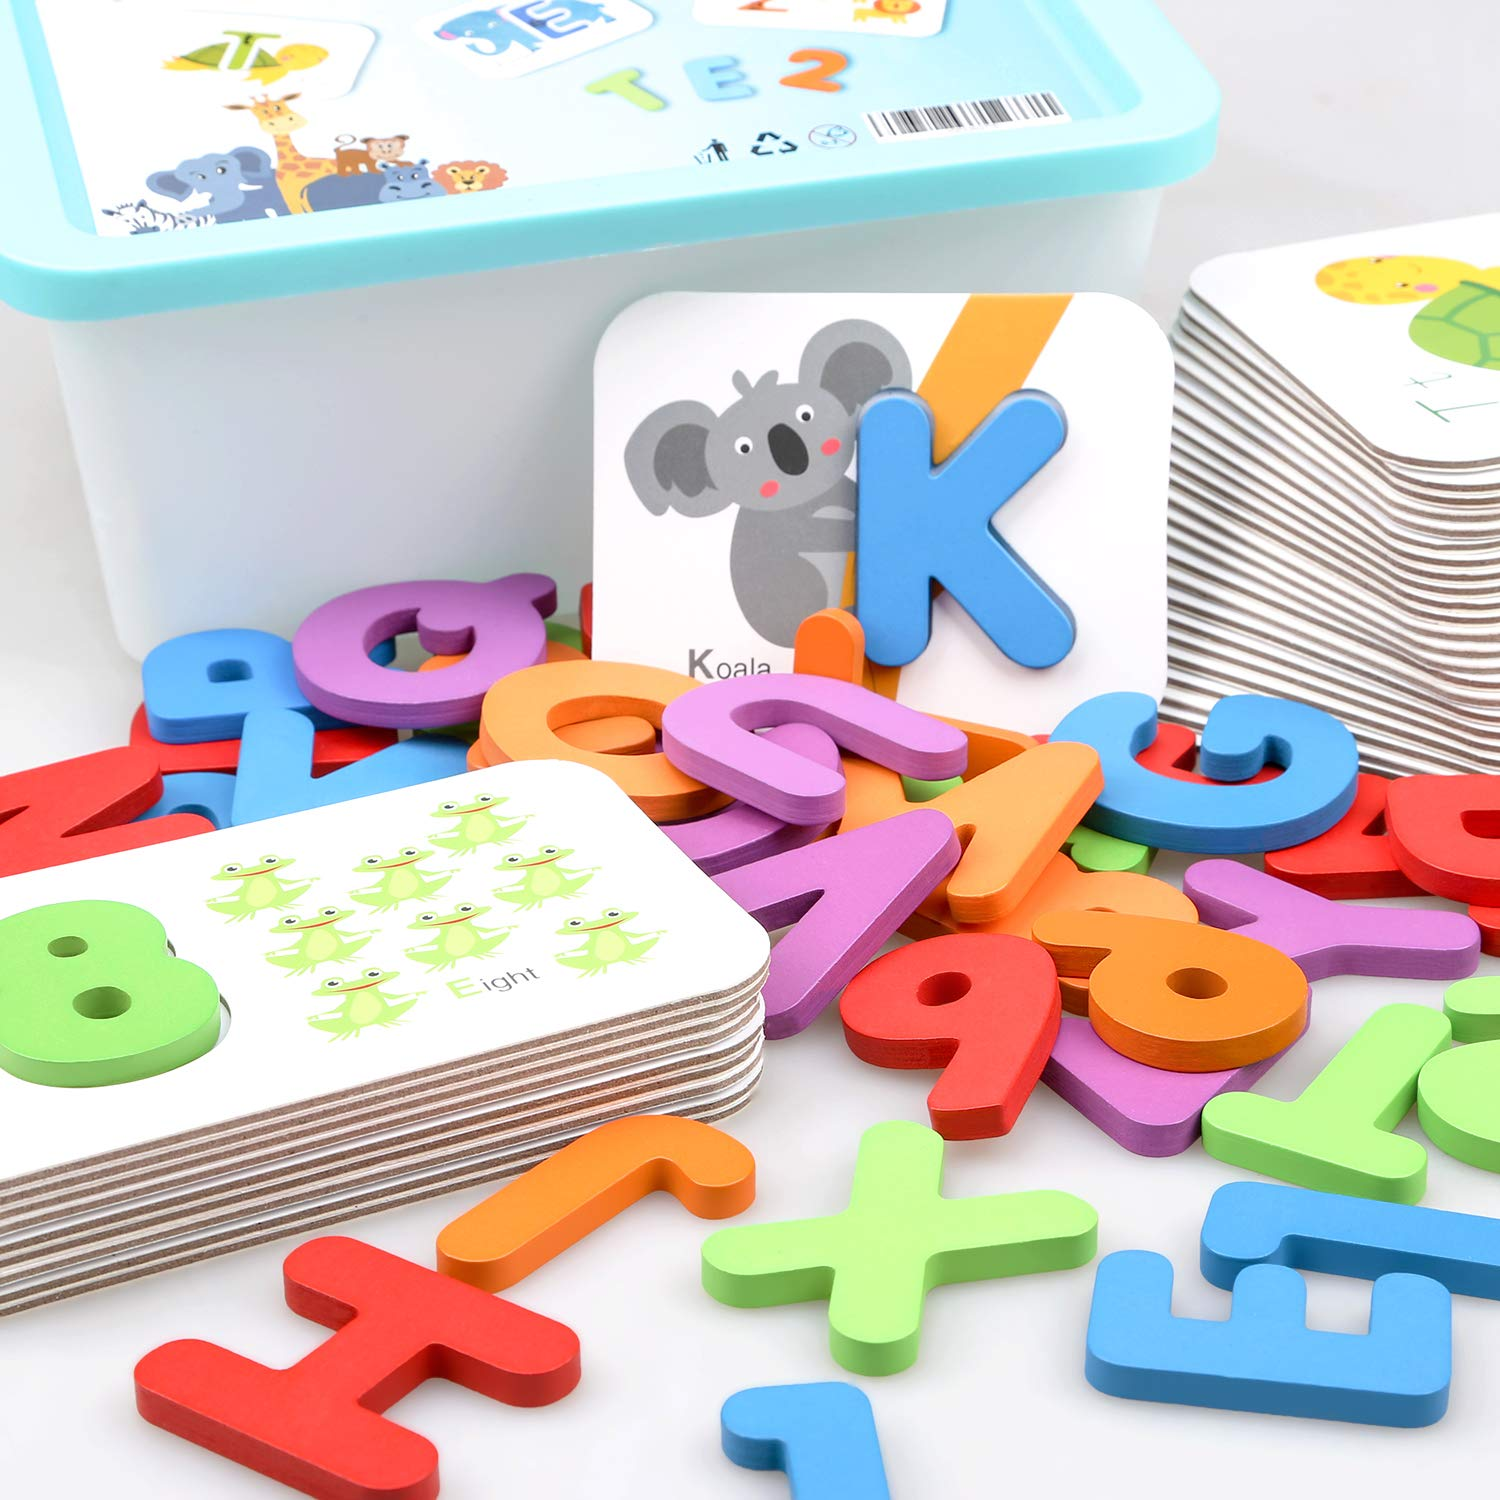 Baby Noah Toddler Animal Alphabet and Number Wooden Jigsaw Puzzle Flash Cards | ABC Letter Cards, Numbers 1 to 10 Counting Cards |Color Recognition Educational Toys Age 3 Preschool and Up by Baby Noah